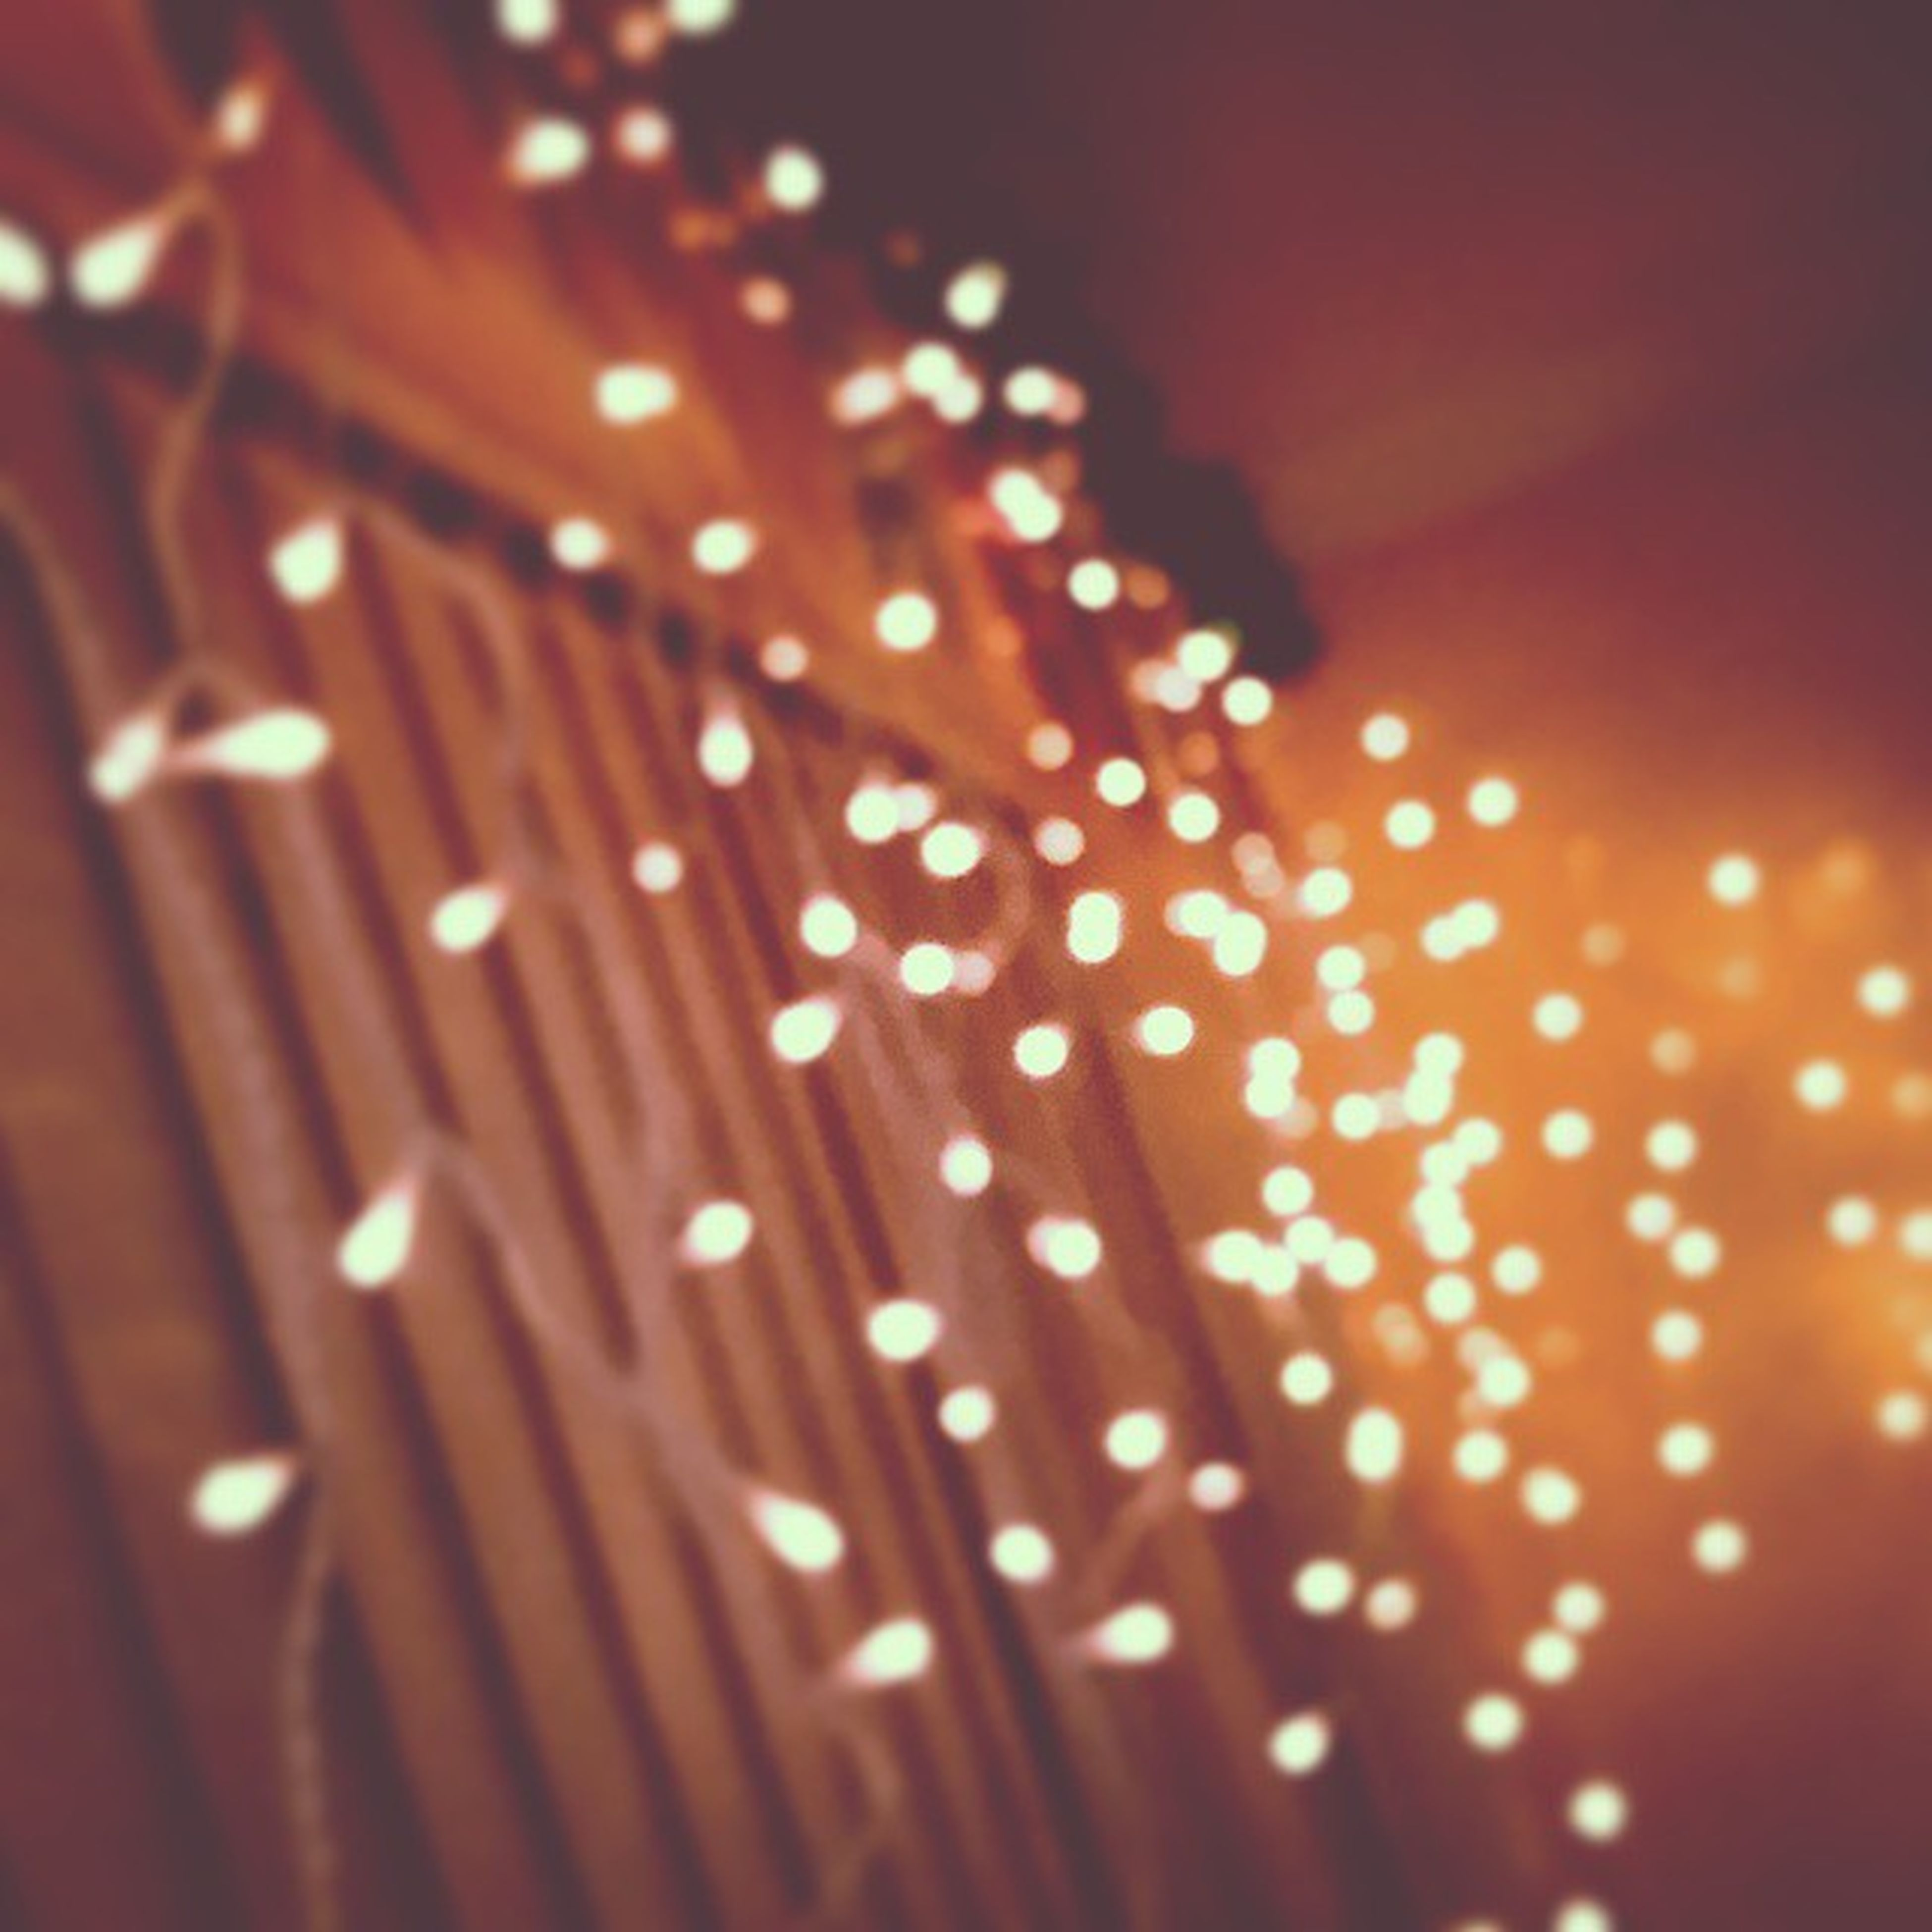 illuminated, night, close-up, pattern, indoors, selective focus, lighting equipment, decoration, no people, wood - material, focus on foreground, glowing, light - natural phenomenon, hanging, design, textured, backgrounds, still life, red